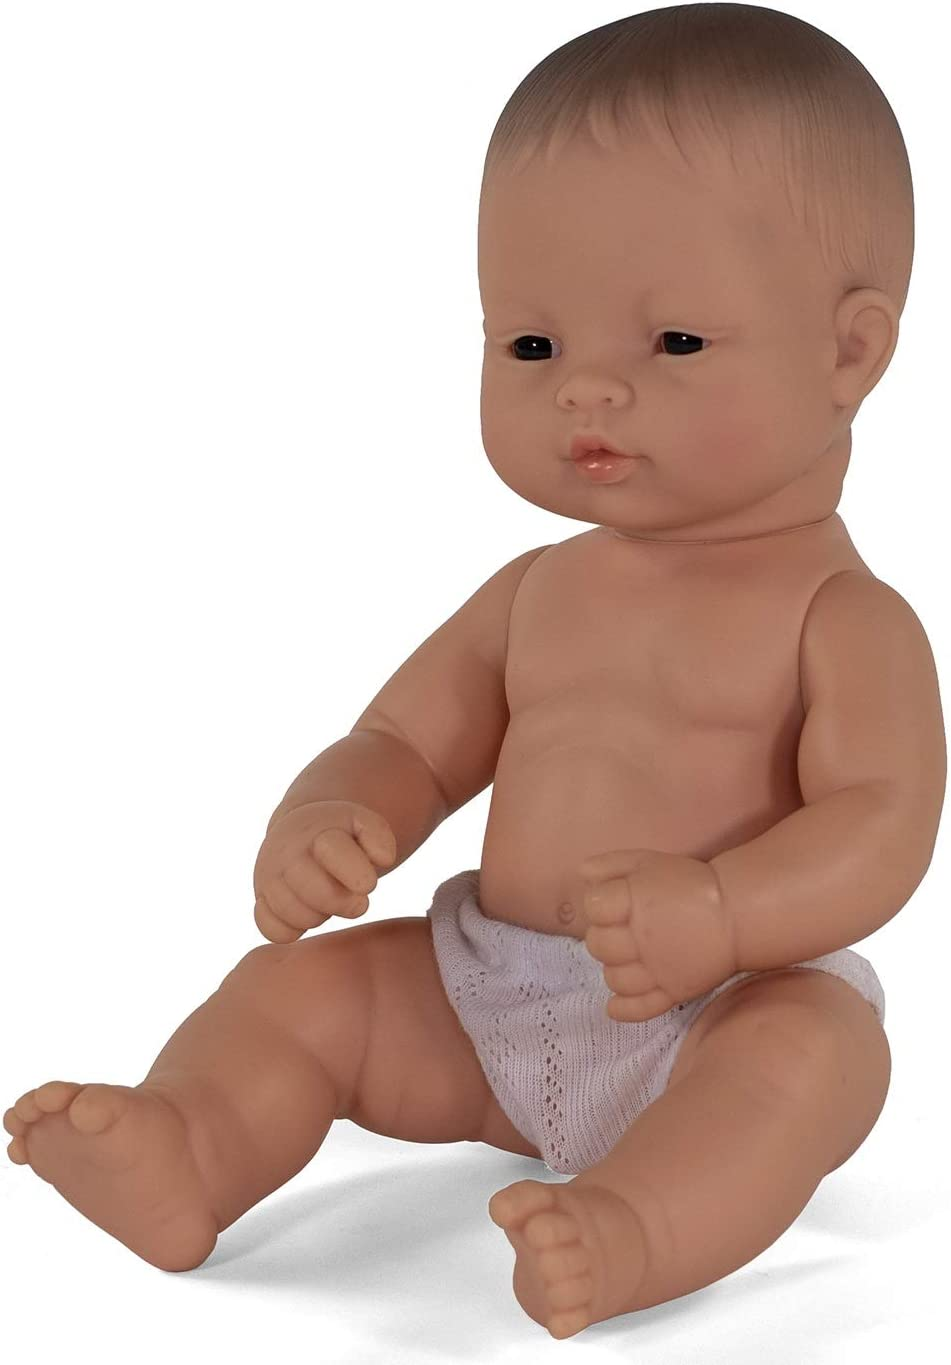 Baby Doll Caucasian BOY with Down Syndrome 15 Miniland Polybag